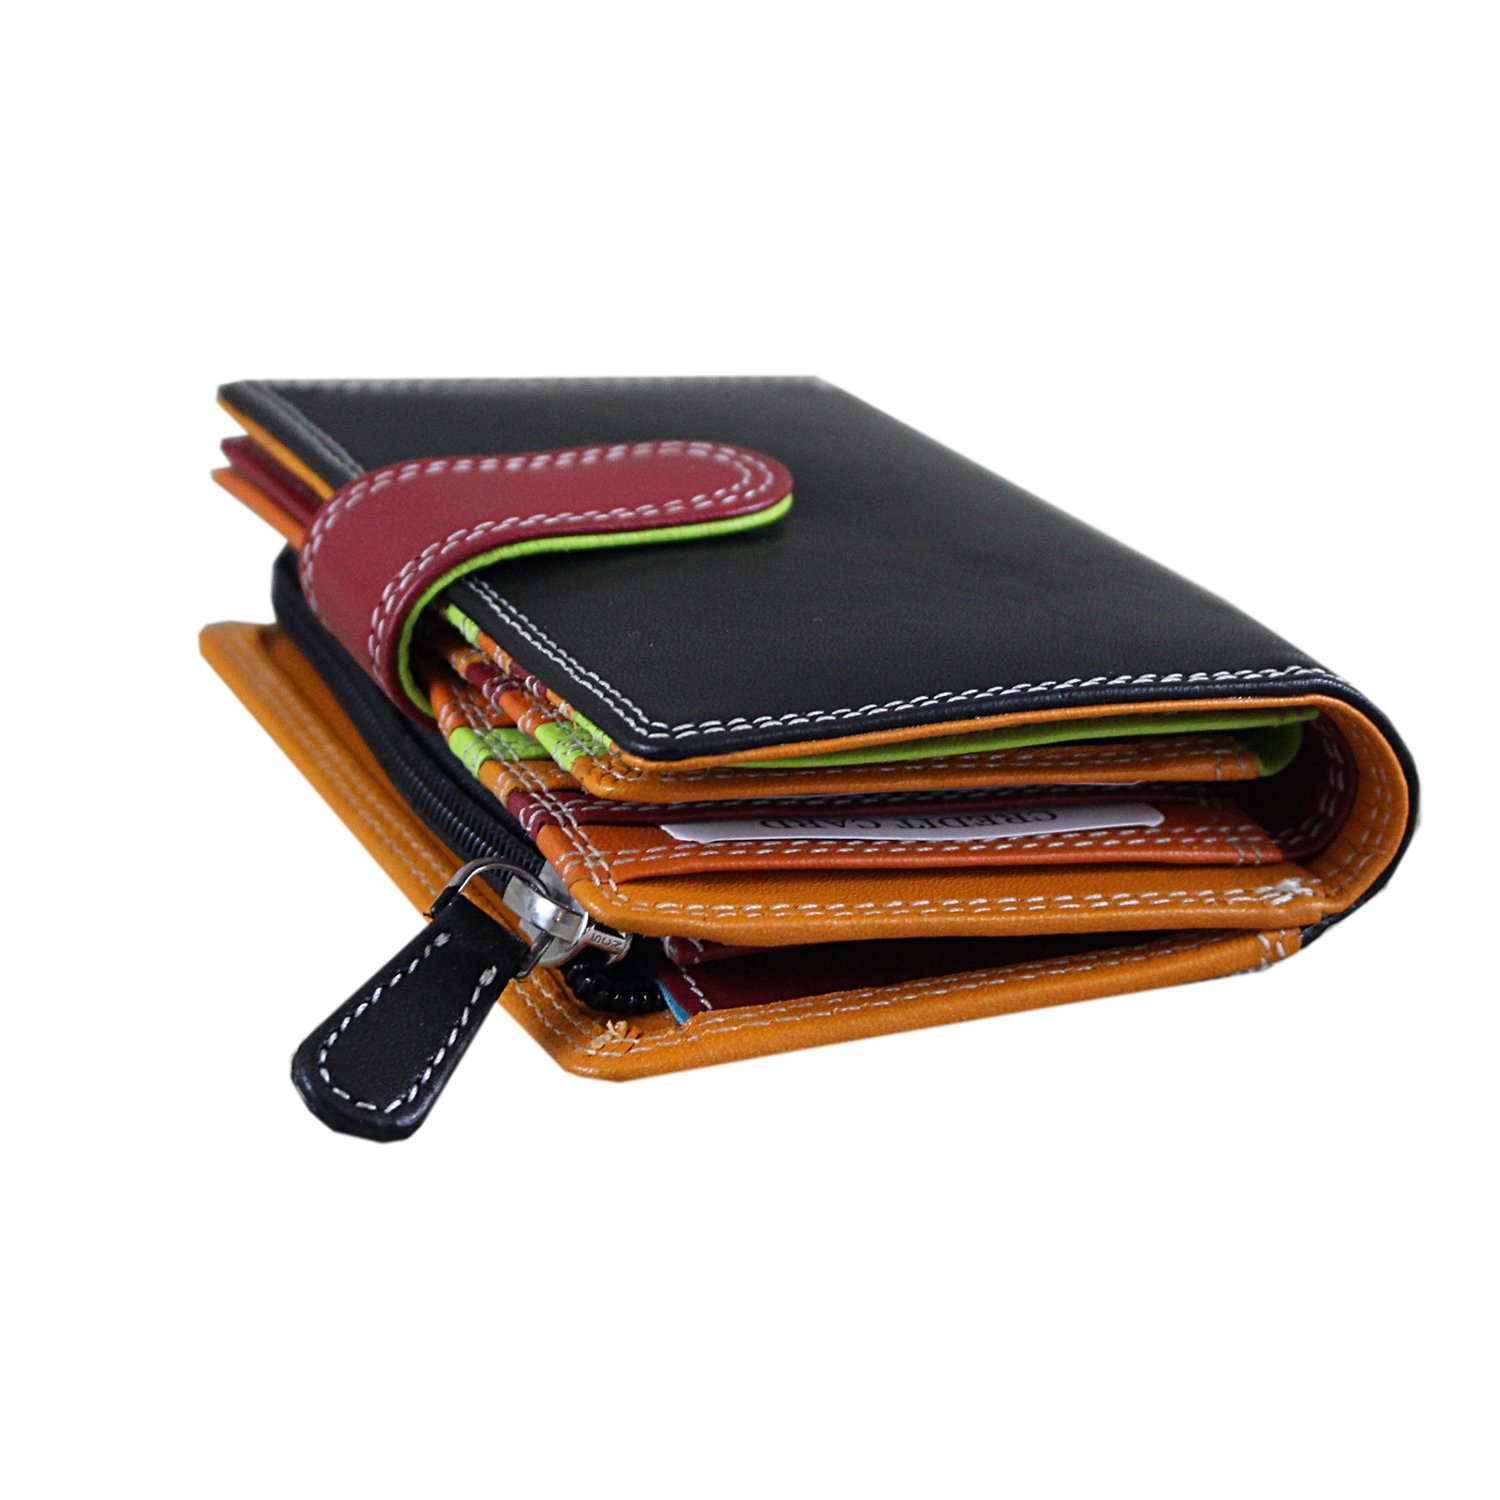 Ladies Luxury Soft Black (Multi Colored Inside) Hand Double-Stitched Real Nappa Leather RFID blocking Small Multi Fall Purse Large Multi Credit Card Wallet with Zip Up Coin Compartment